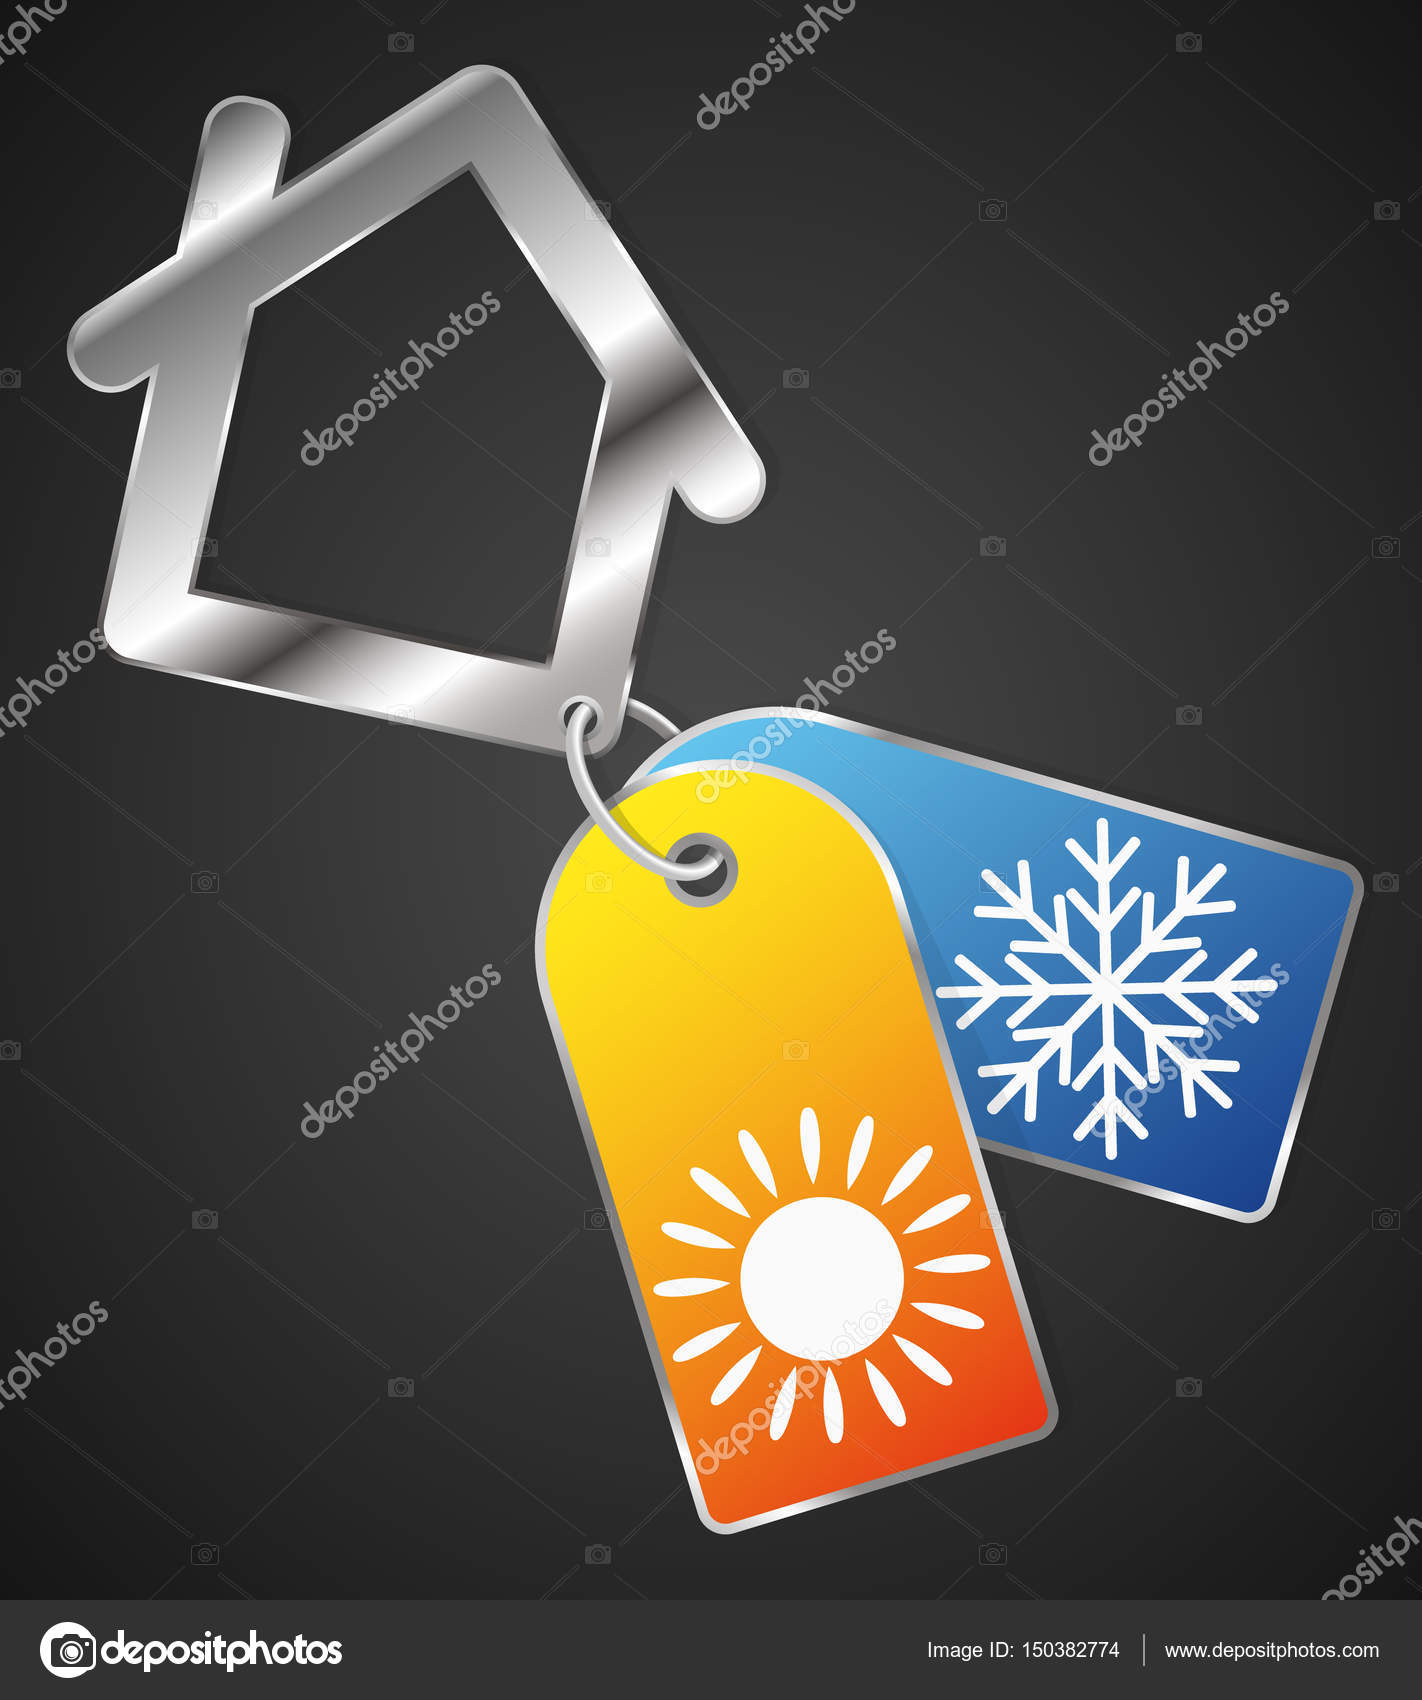 Heat And Cold In The House Symbol Stock Vector John1279 150382774